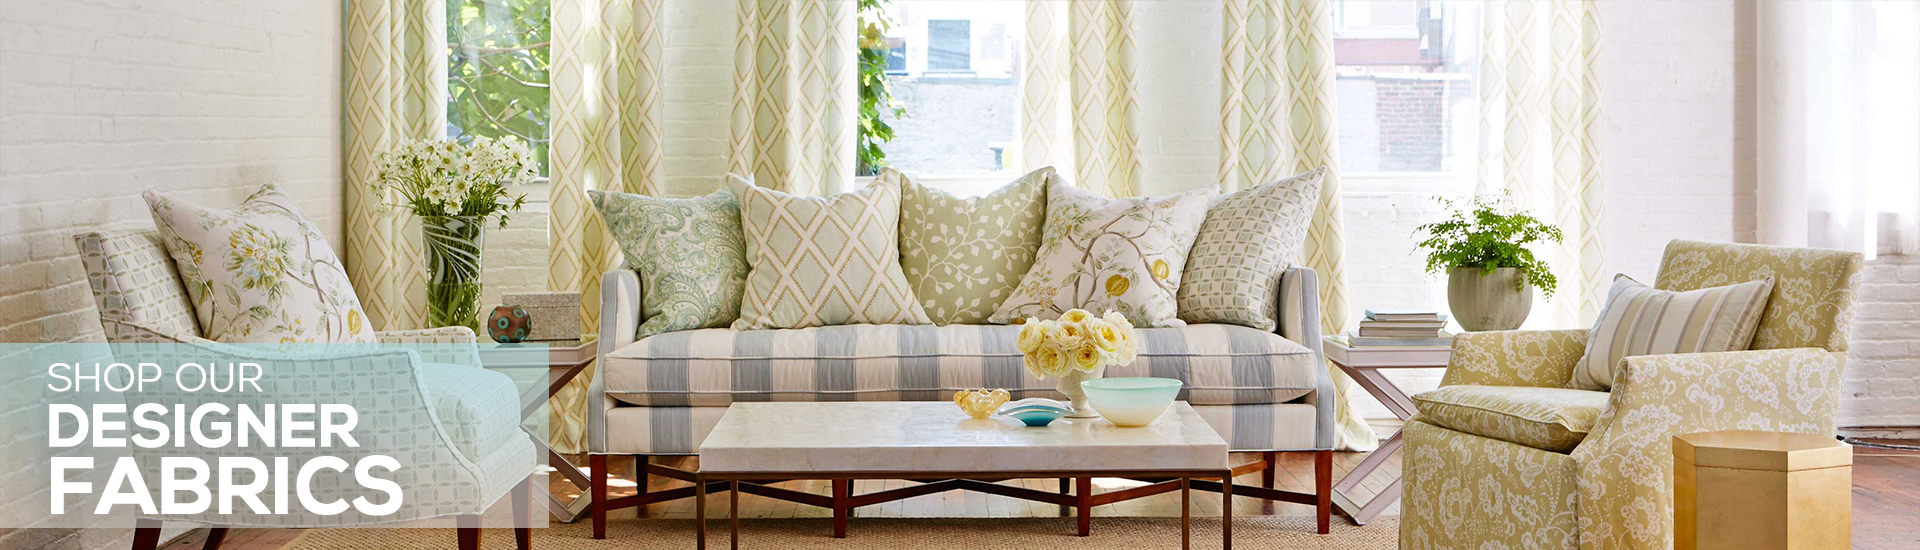 We Are Your Inside Source To Savings On Designer Fabrics, Upholstery Fabrics,  And Drapery Fabrics Online!